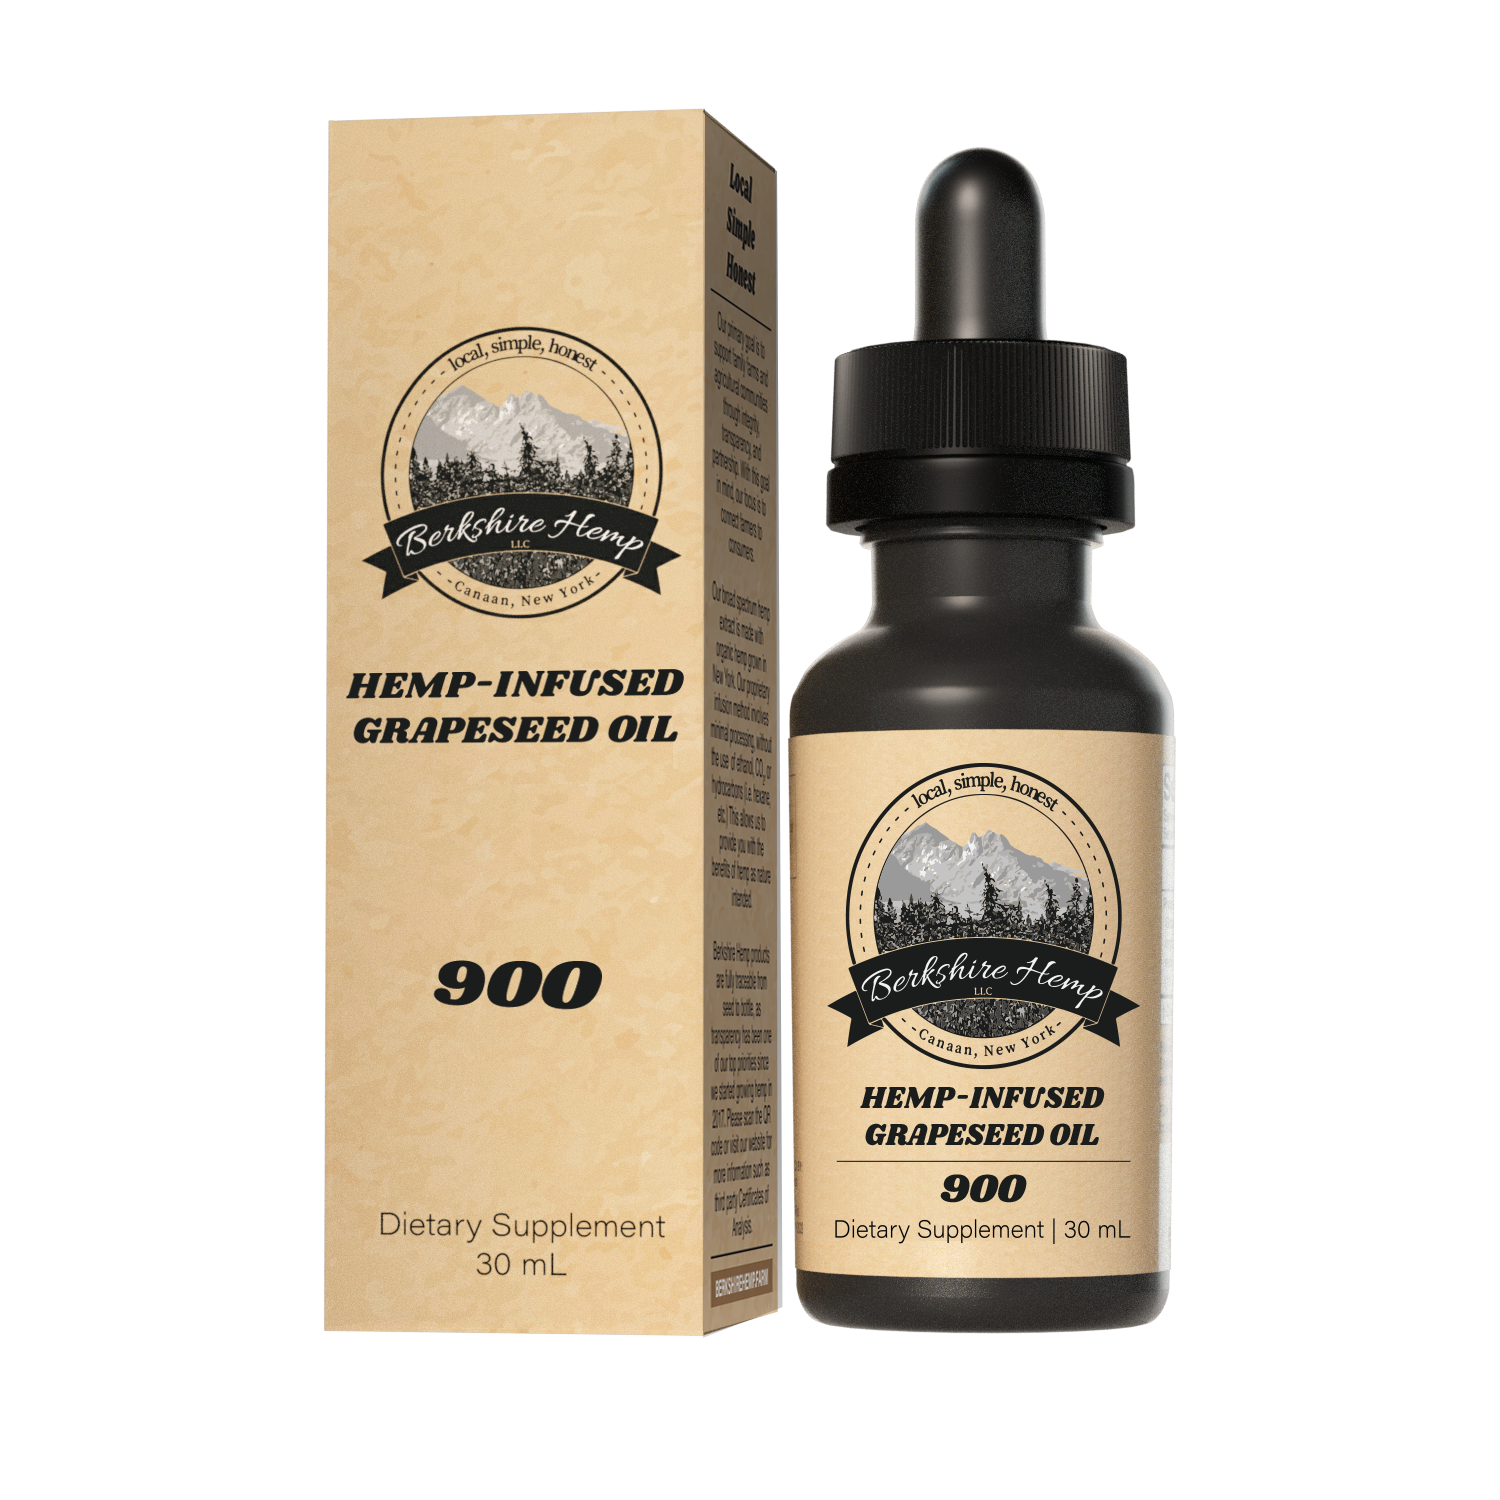 Hemp Infused Grapeseed Oil 900 - 30 mL